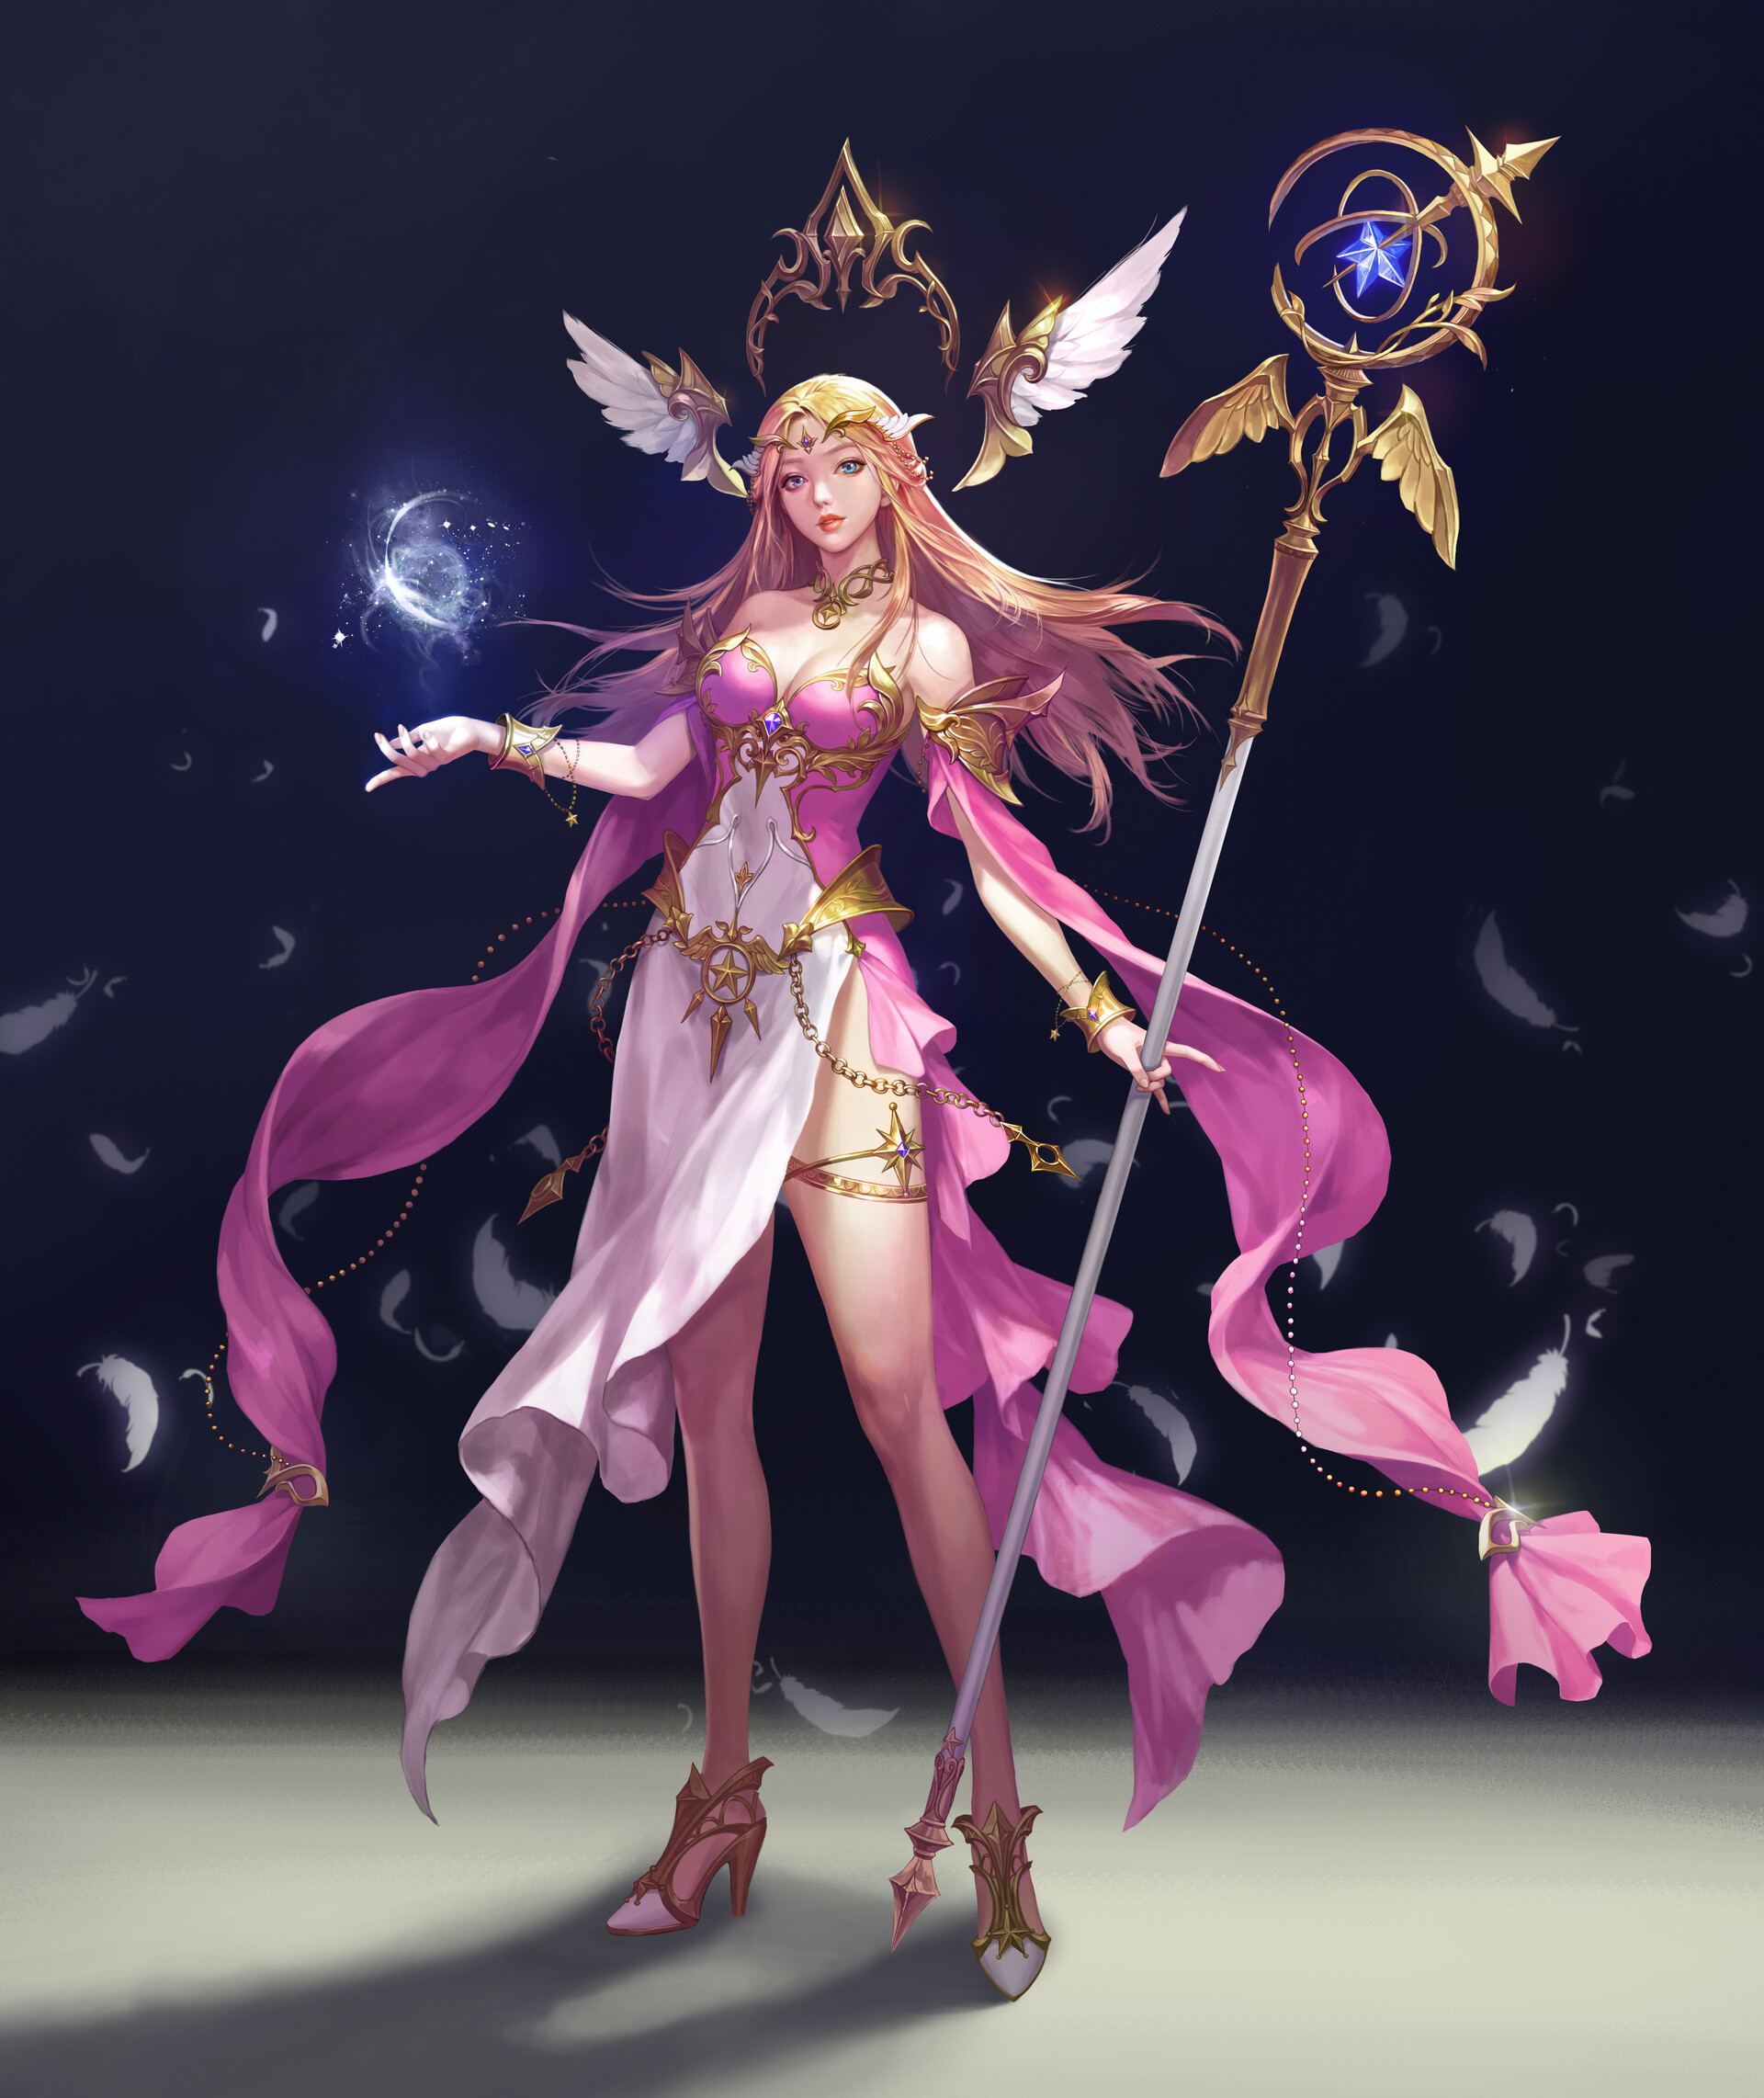 General 1920x2283 Minsook An drawing women blonde long hair straight hair wind tiaras hair accessories wings crown dress pink clothing magician feathers staff spell shoes high heels gold looking at viewer blue eyes